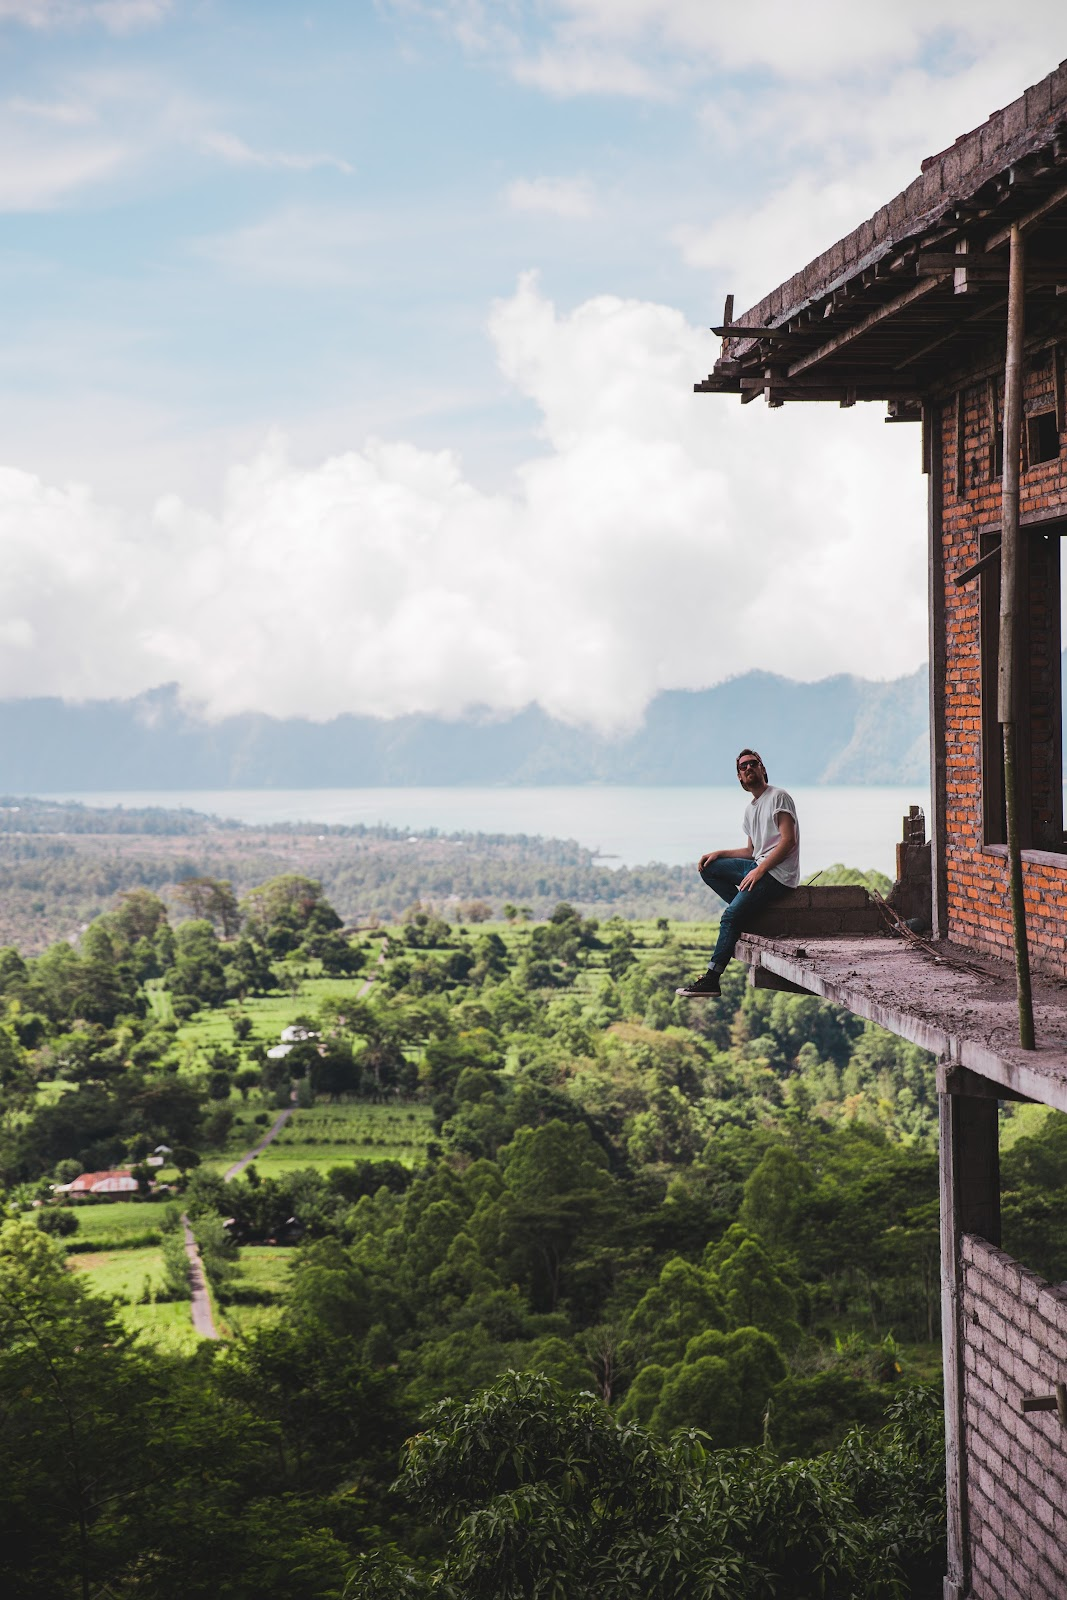 man, alone, solo, travel, heights, view